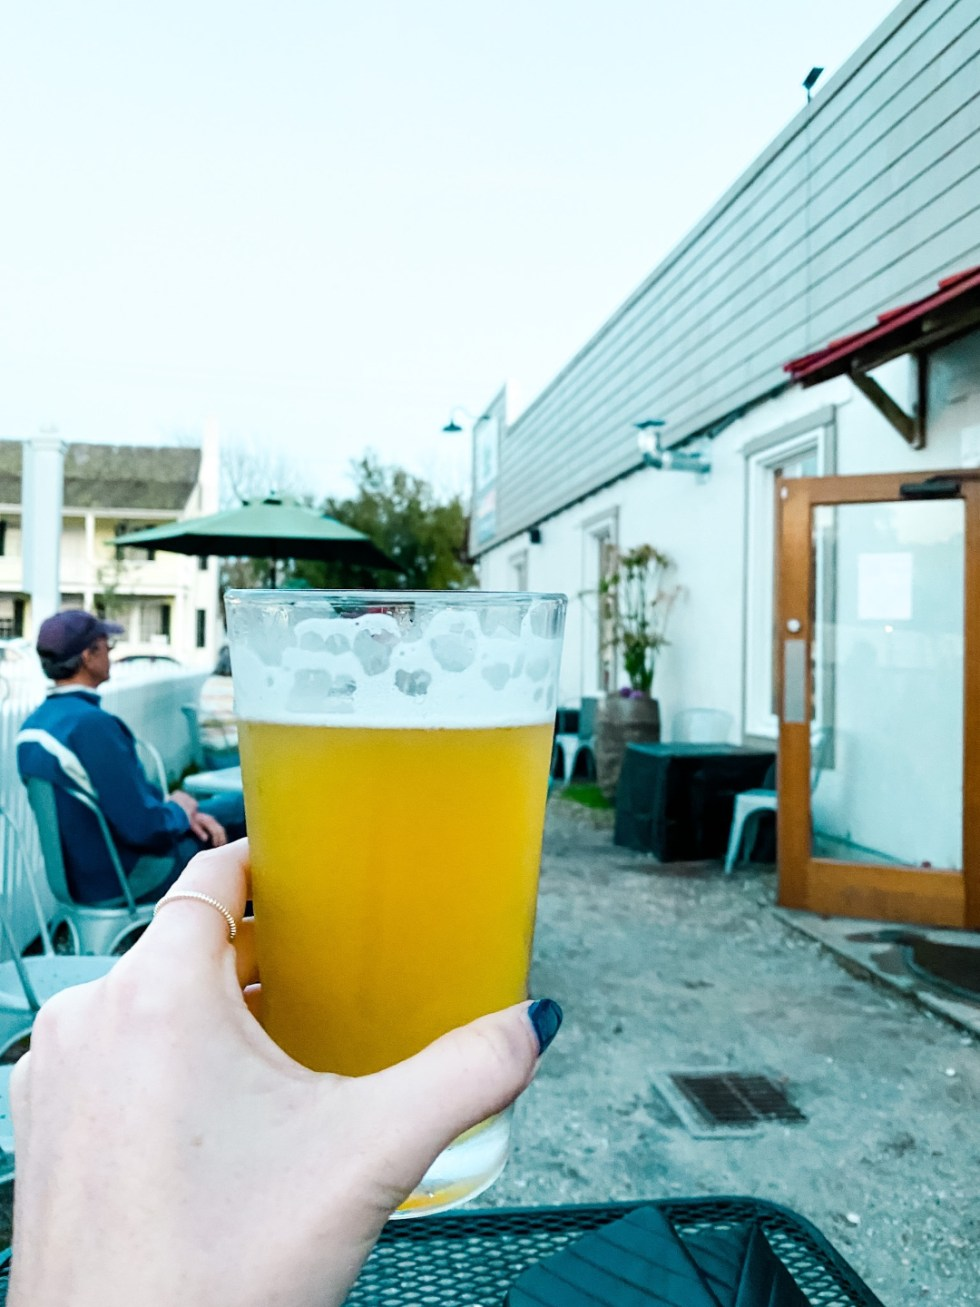 Weekend Travel: The Best Things to Do in Beaufort NC in 48 Hours - I'm Fixin' To - @imfixintoblog |Things to Do in Beaufort NC by popular NC travel blog, I'm Fixin' To: image of a woman holding a glass of beer in her hand.